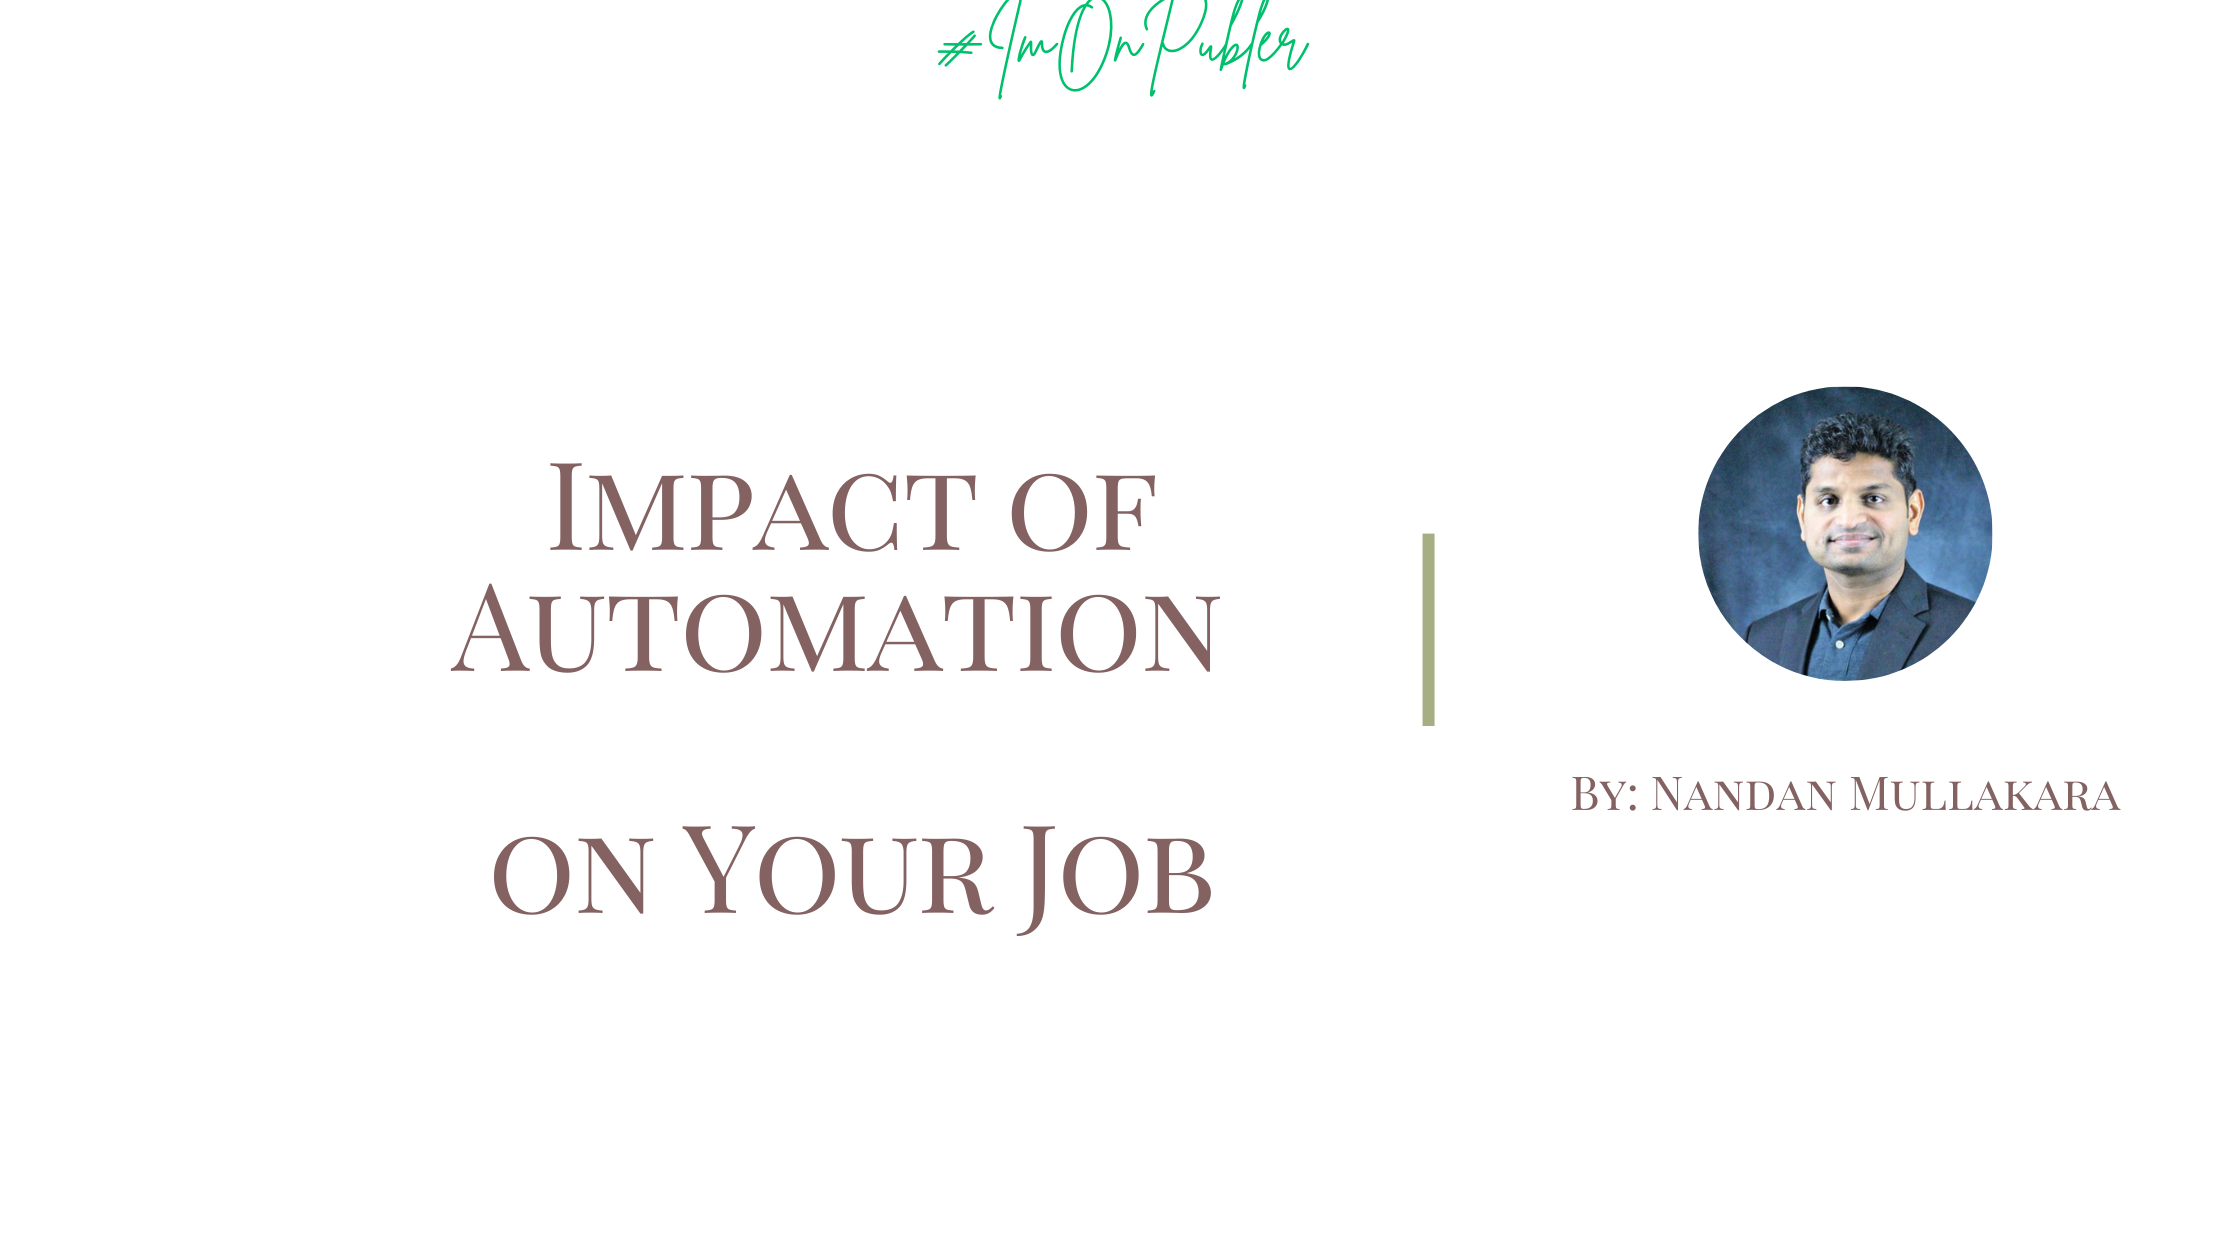 Here's a professional report and view on how automation is affecting our every day life and jobs. Tips to change everything for the better.